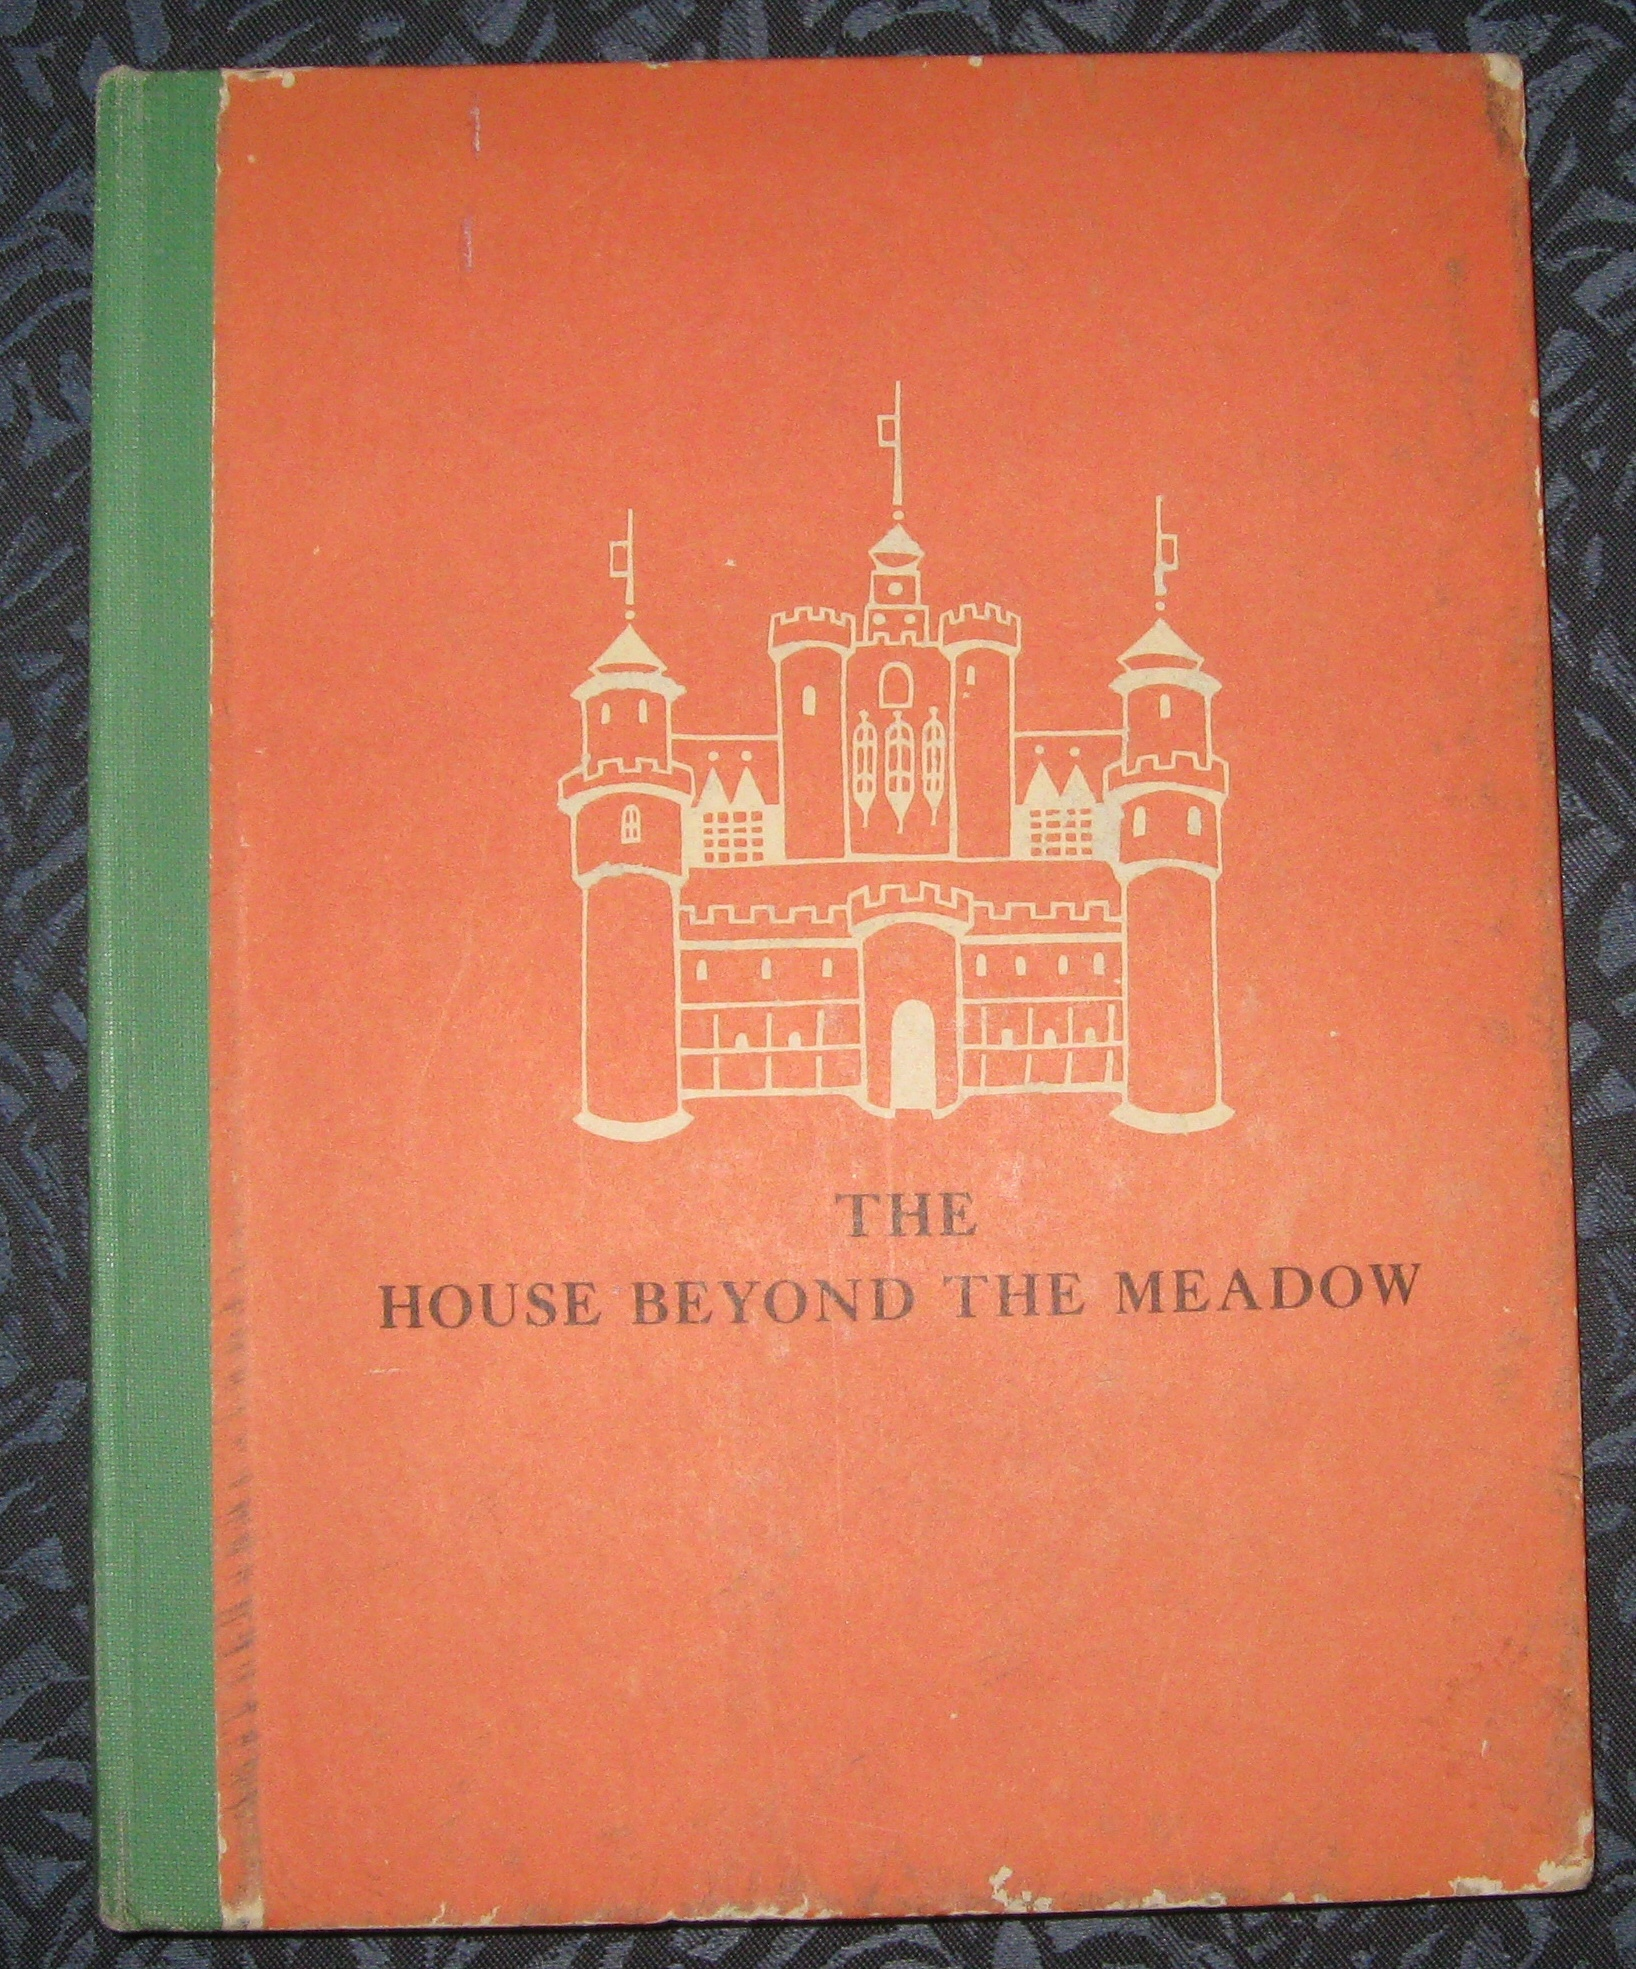 THE HOUSE BEYOND THE MEADOW, Behn, Harry